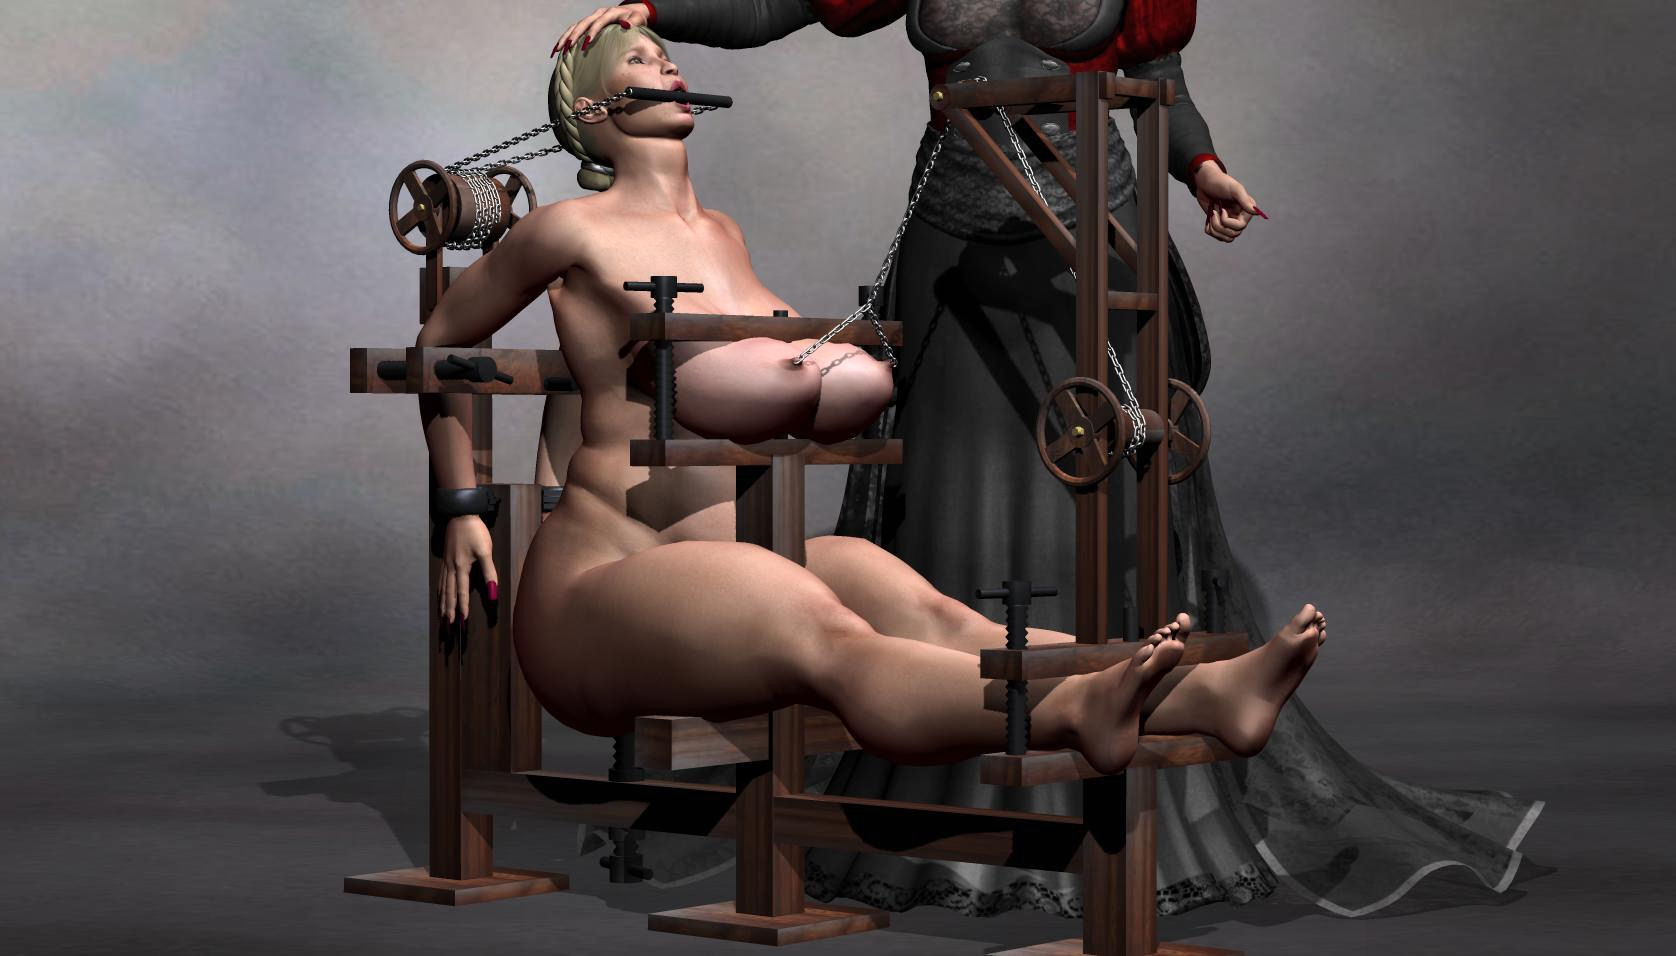 3d bdsm art movies sexy scenes